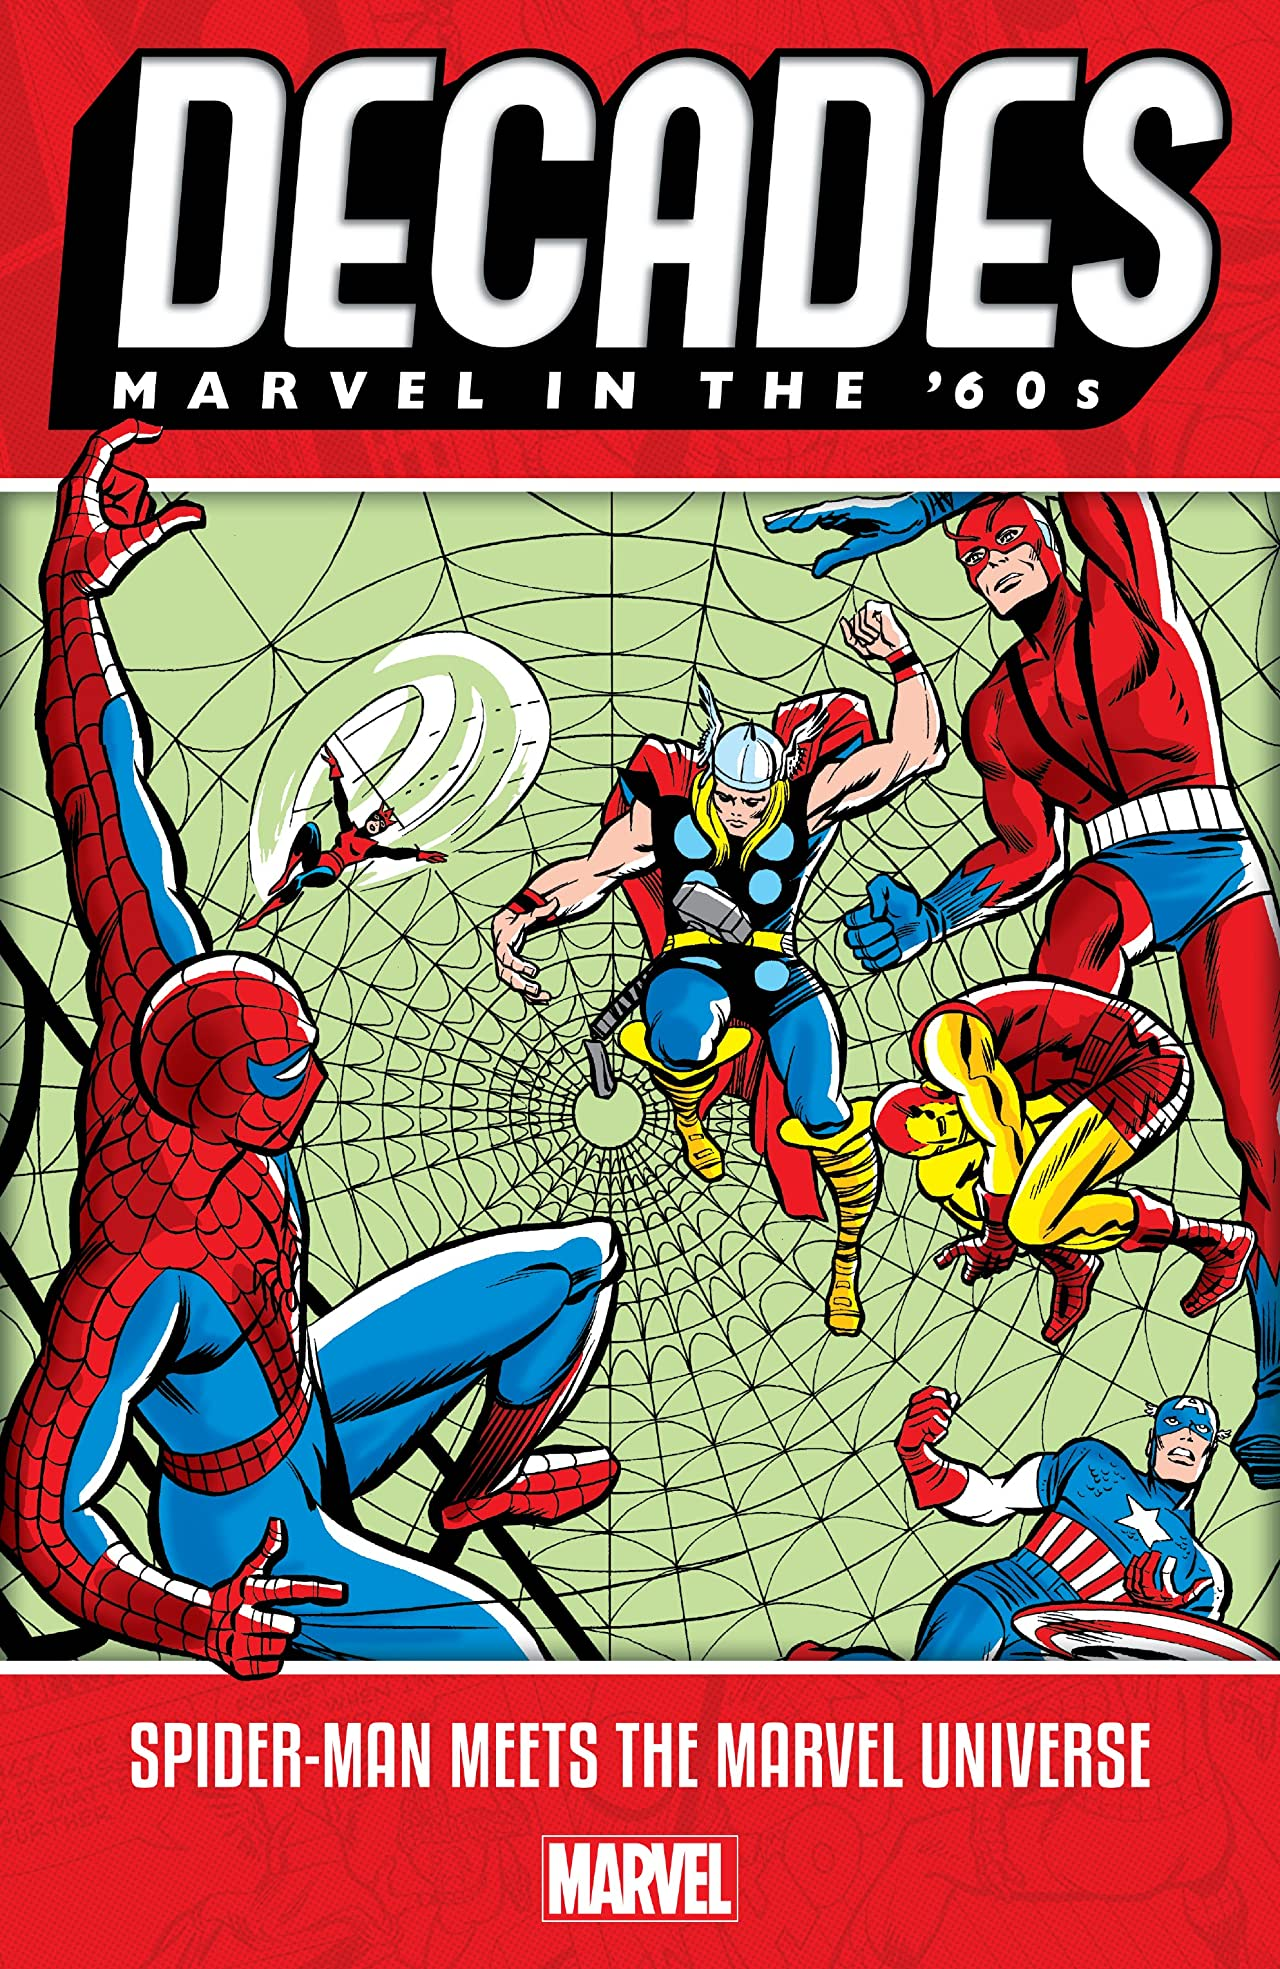 Decades: Marvel In The '60s - Spider-Man Meets The Marvel Universe